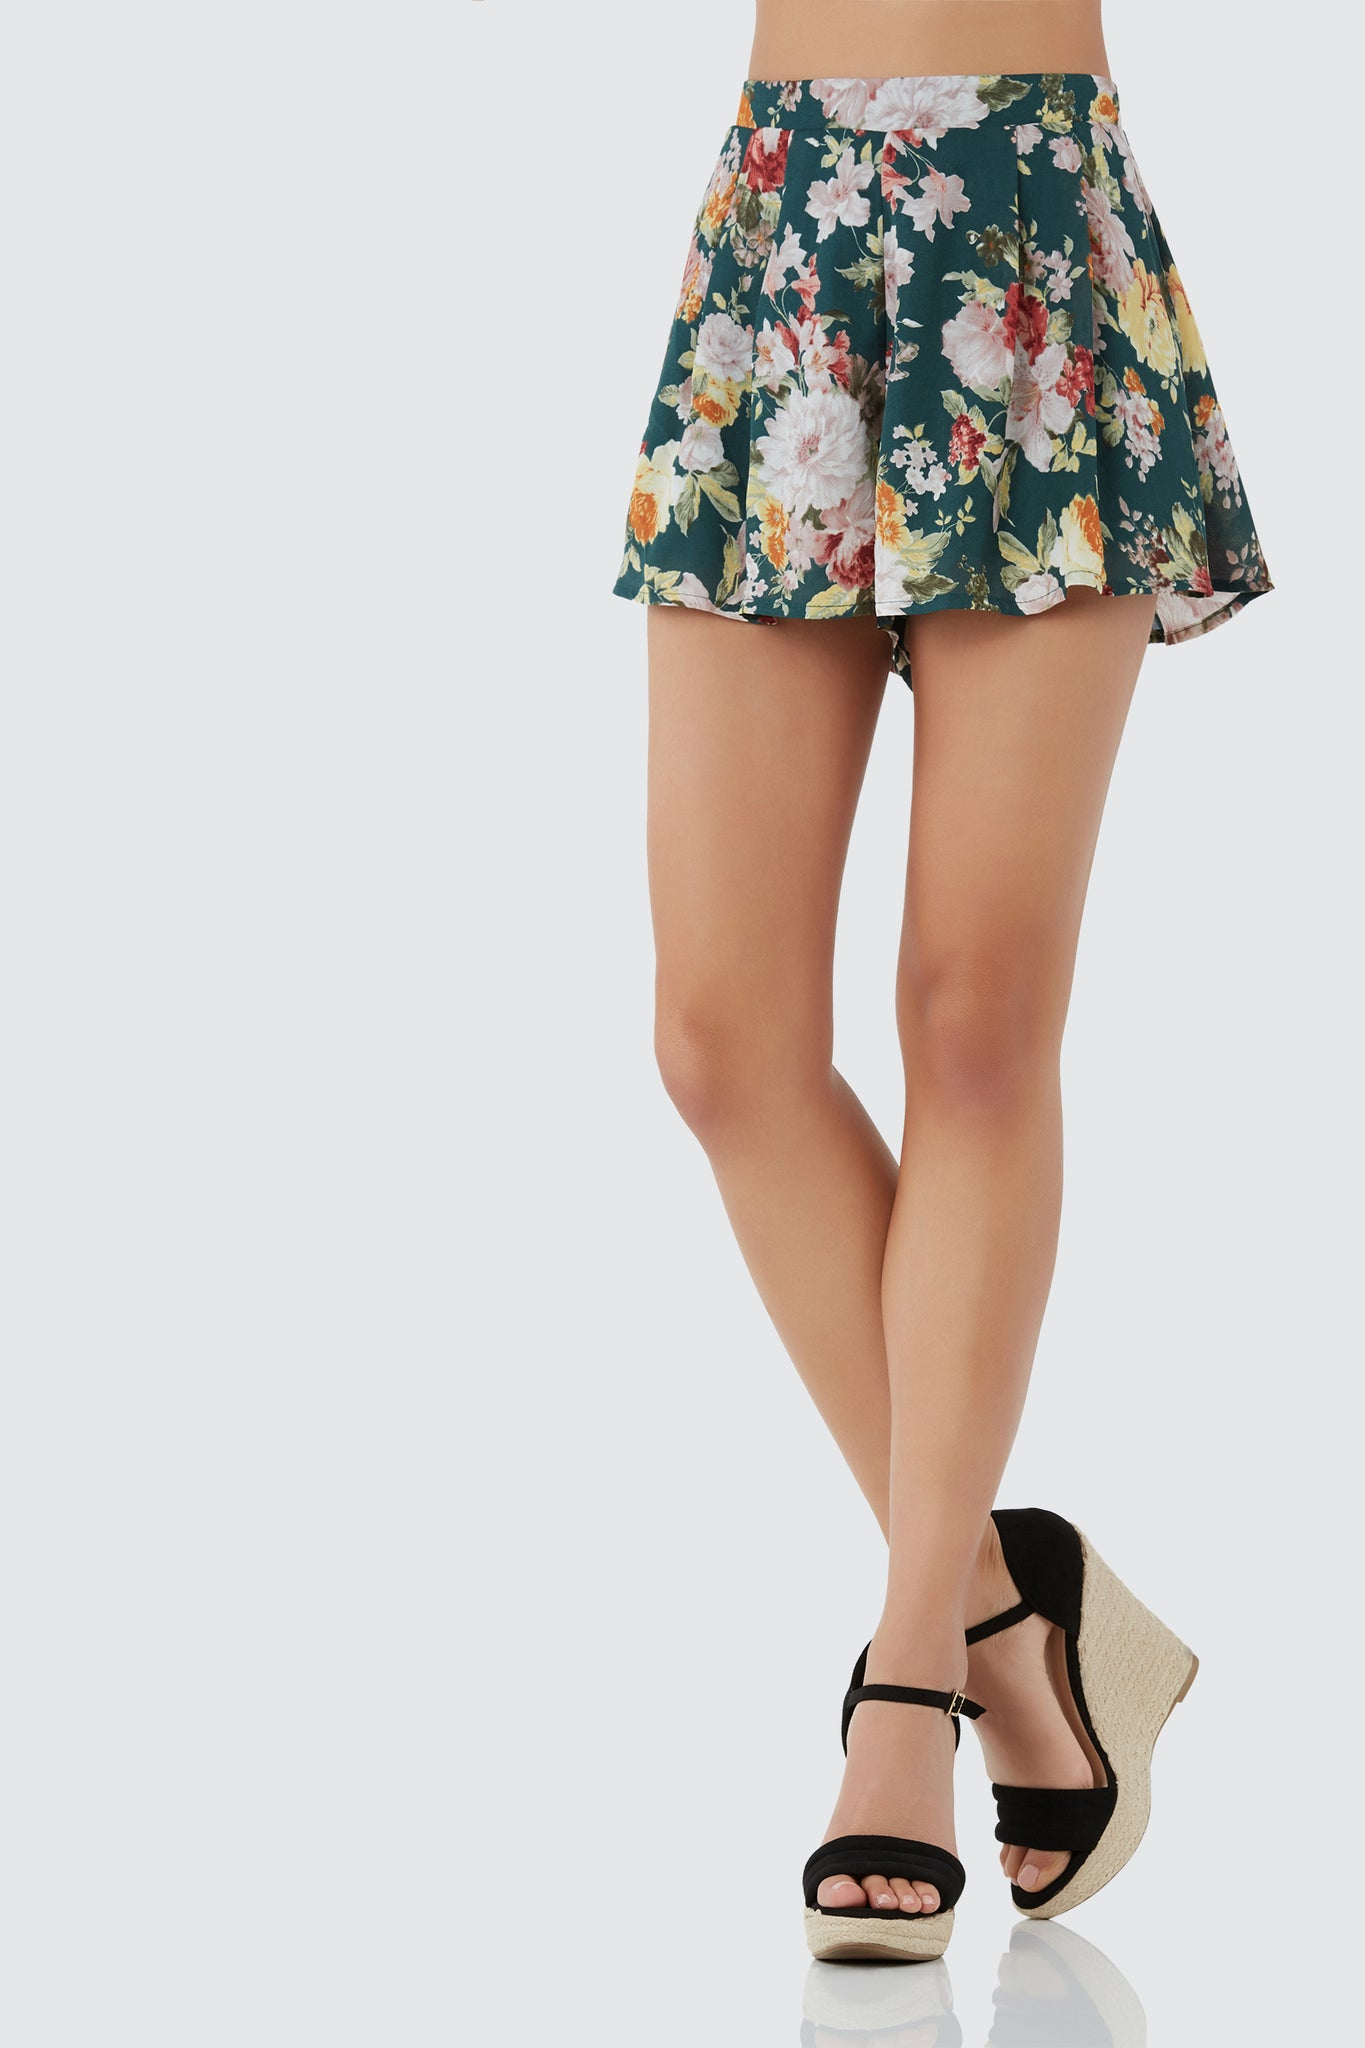 Fully lined chiffon shorts with floral print throughout. High rise waist with elasticized band for comfortable fit.